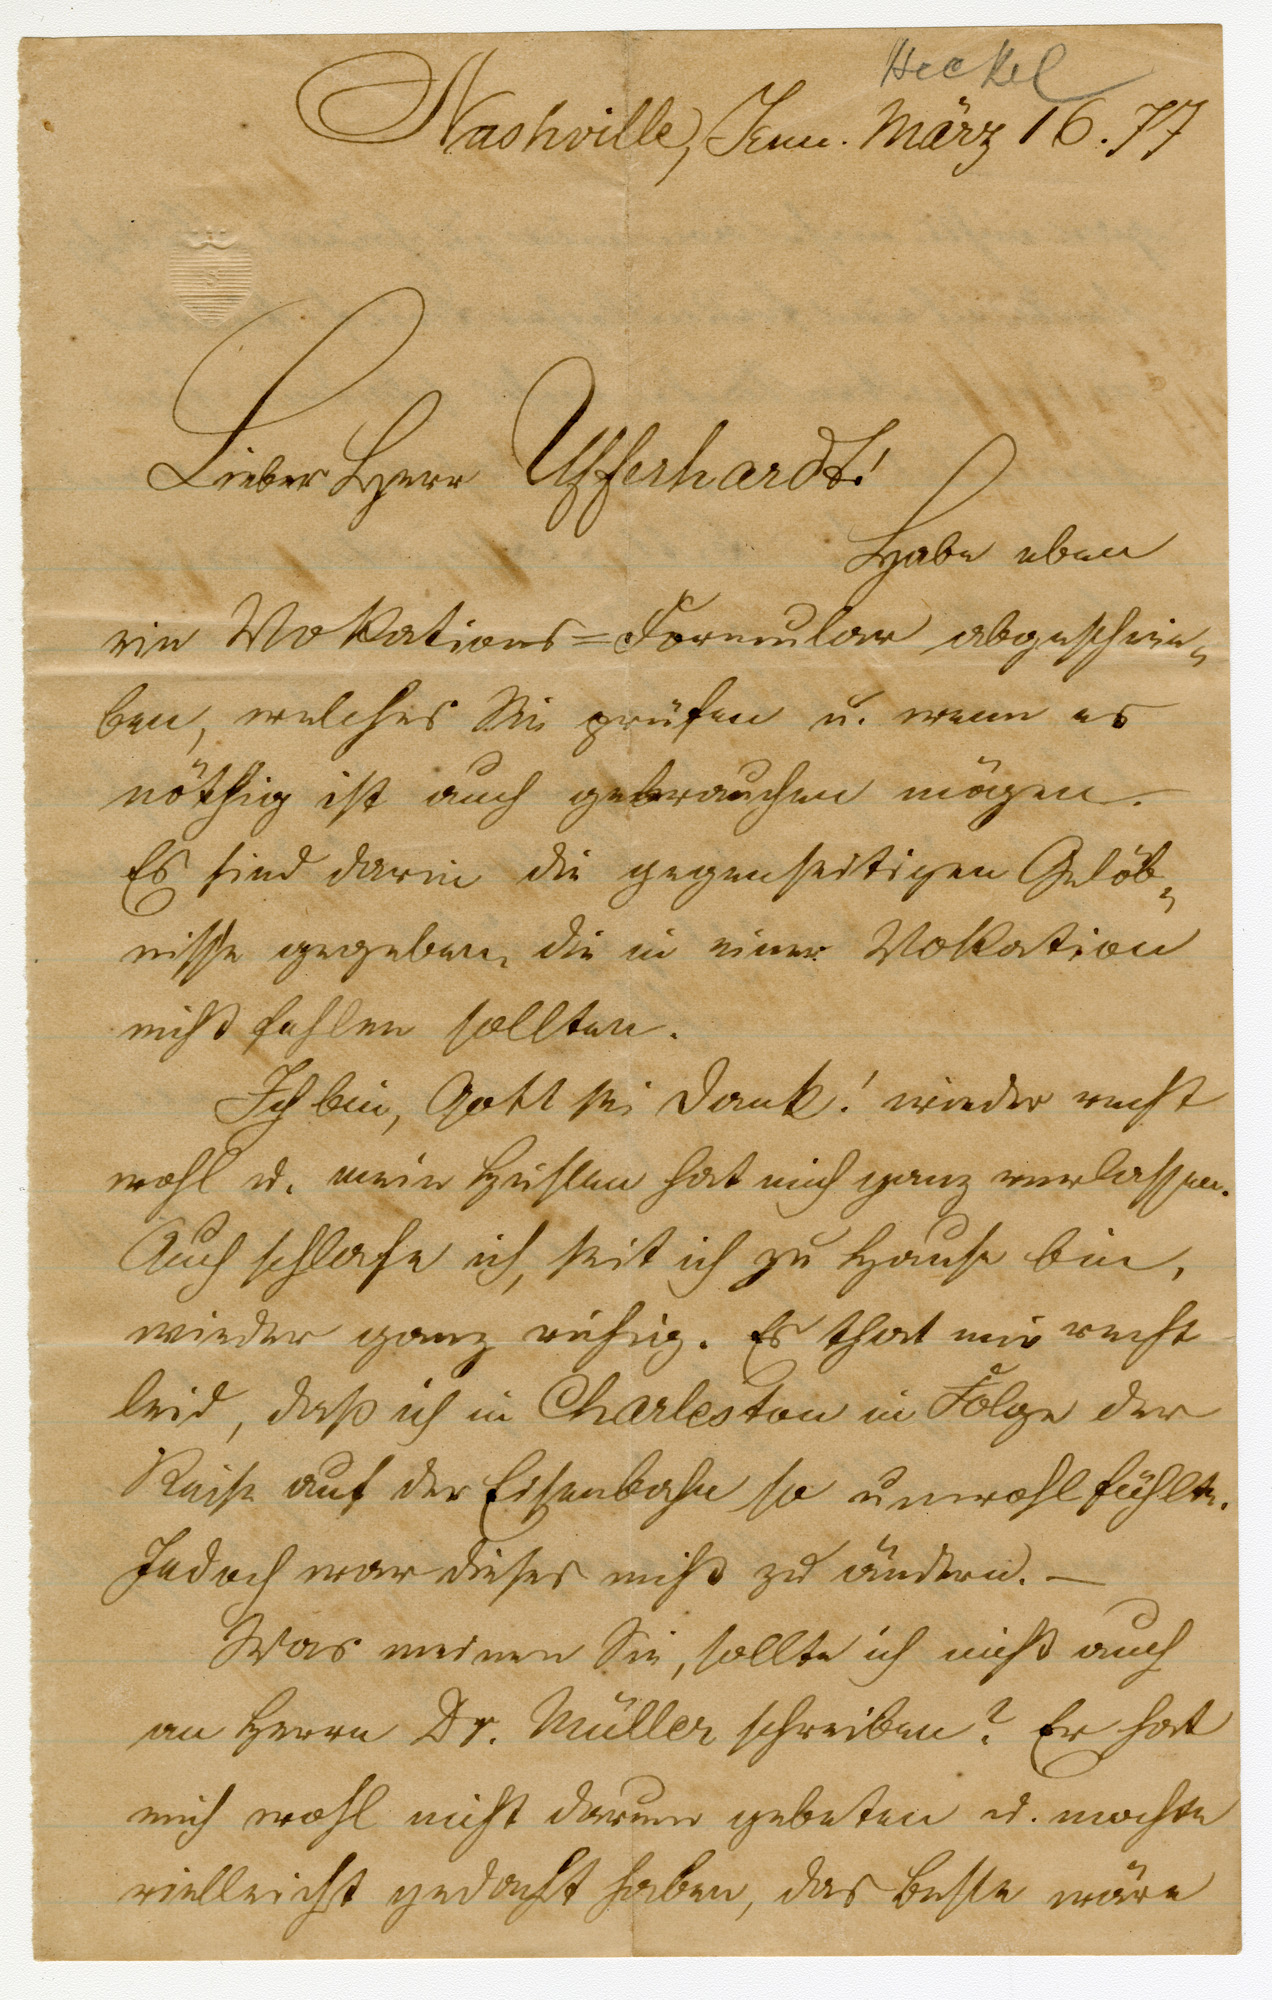 Letter from Johannes Heckel to William Ufferhardt, March 16, 1877